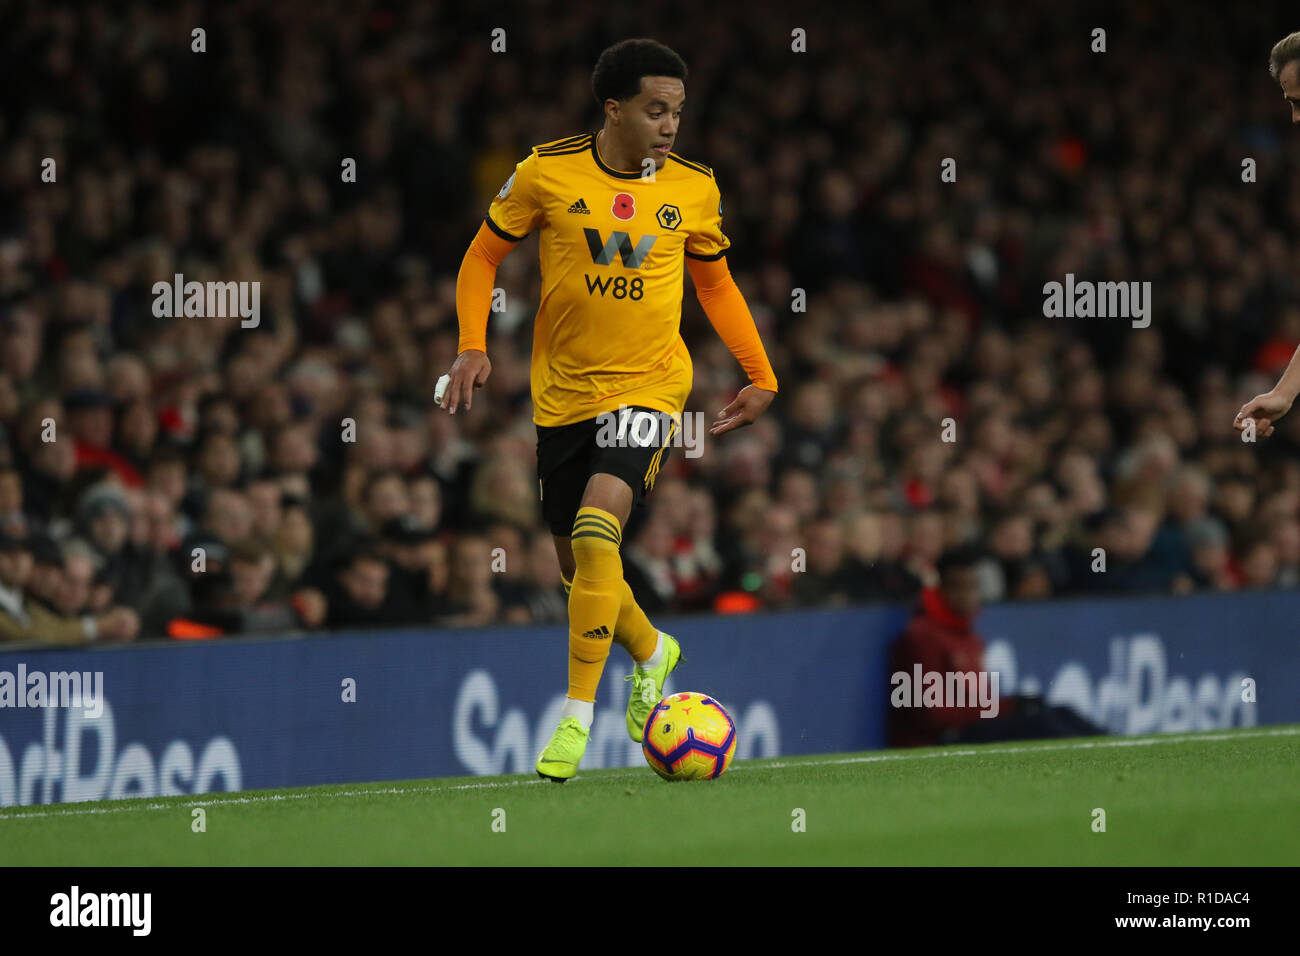 Arsenal V Wolves Picture Stock Photos   Arsenal V Wolves Picture ... 55e919a4a